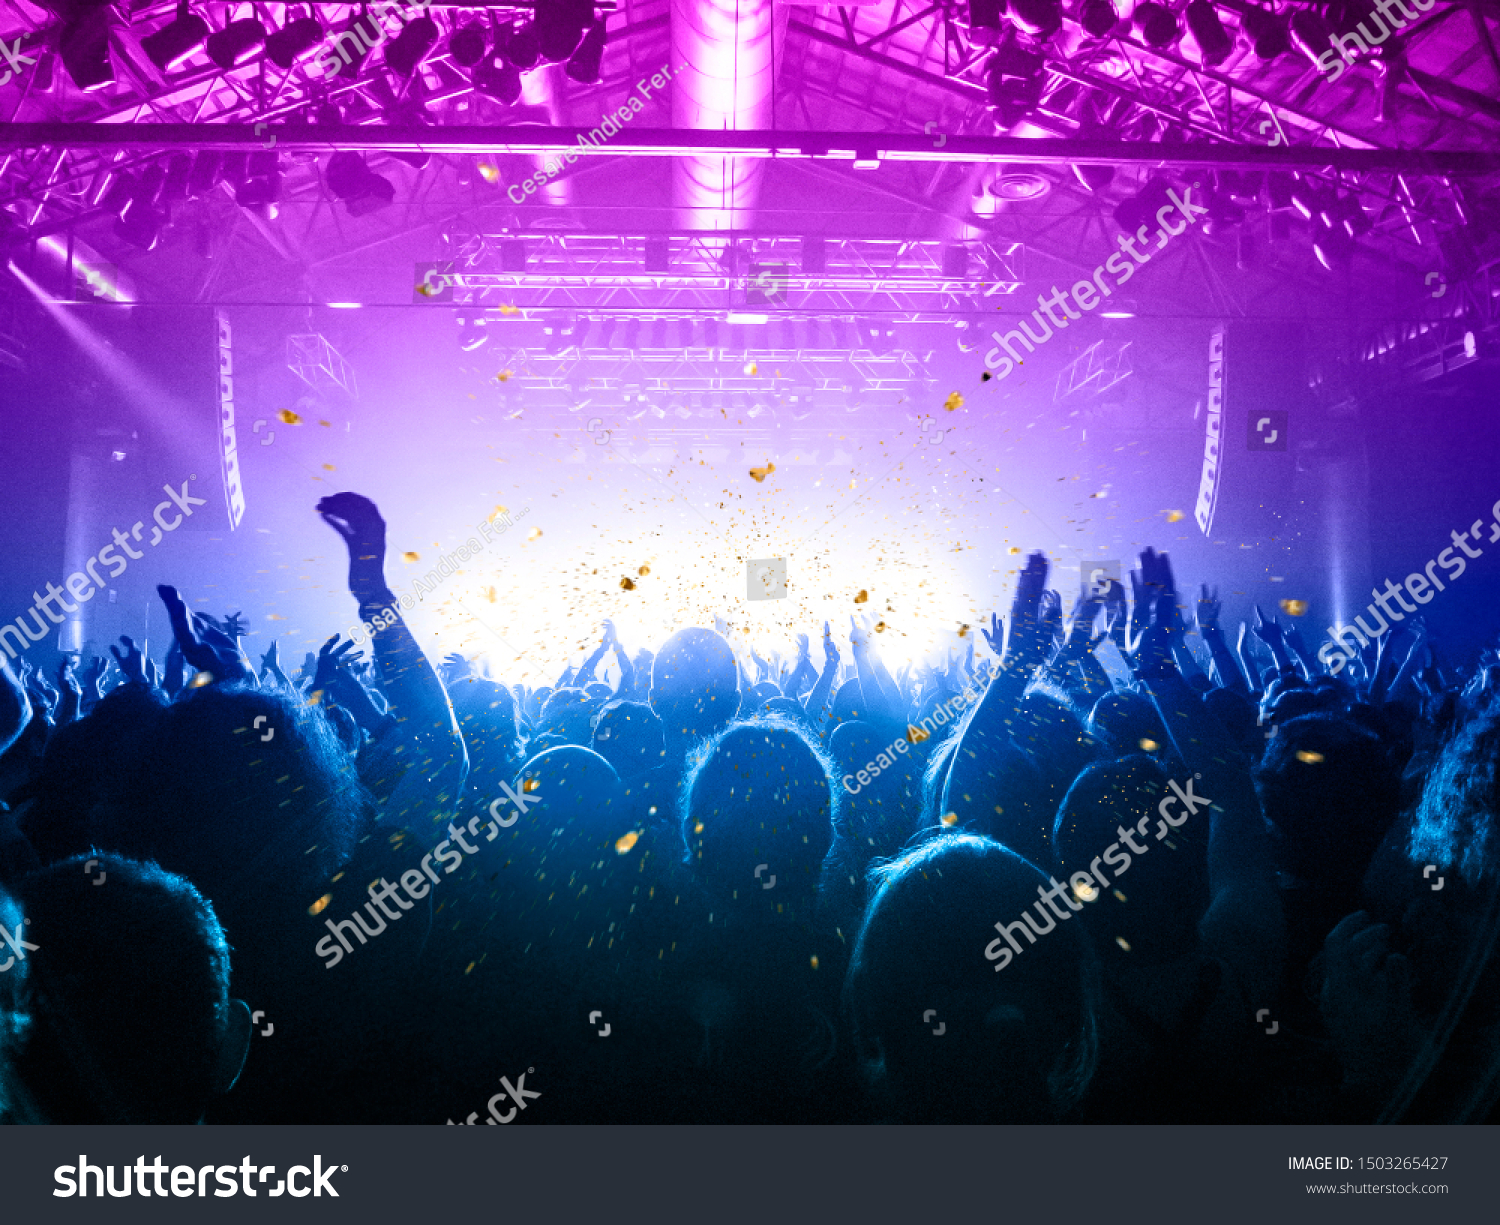 Musical event with people silhouettes clapping a live stage #1503265427